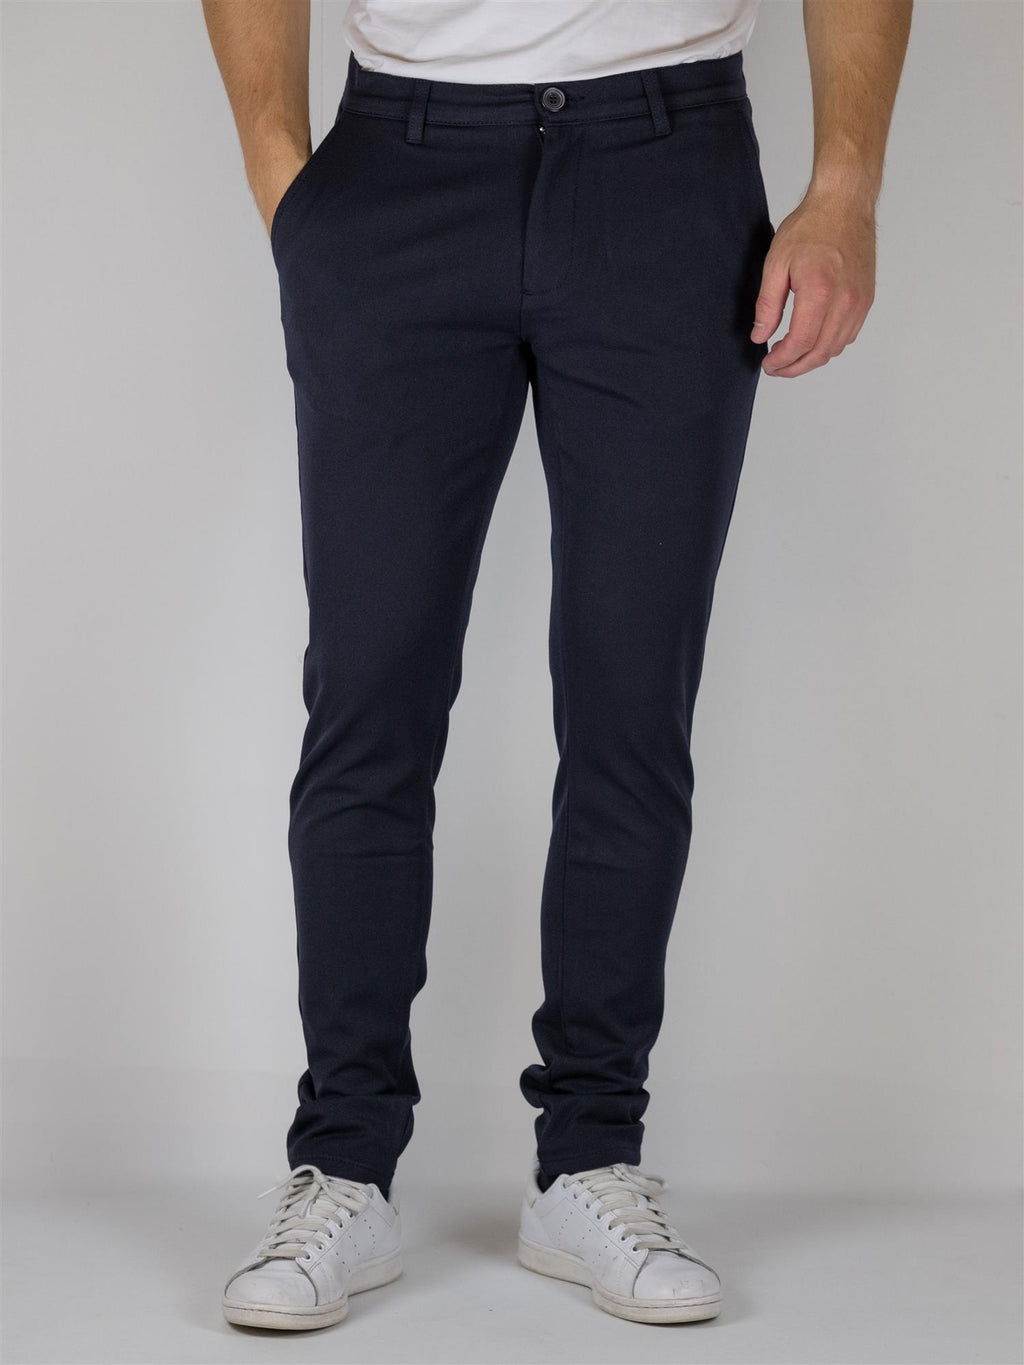 Frederic Basic+ Flex pant - Navy